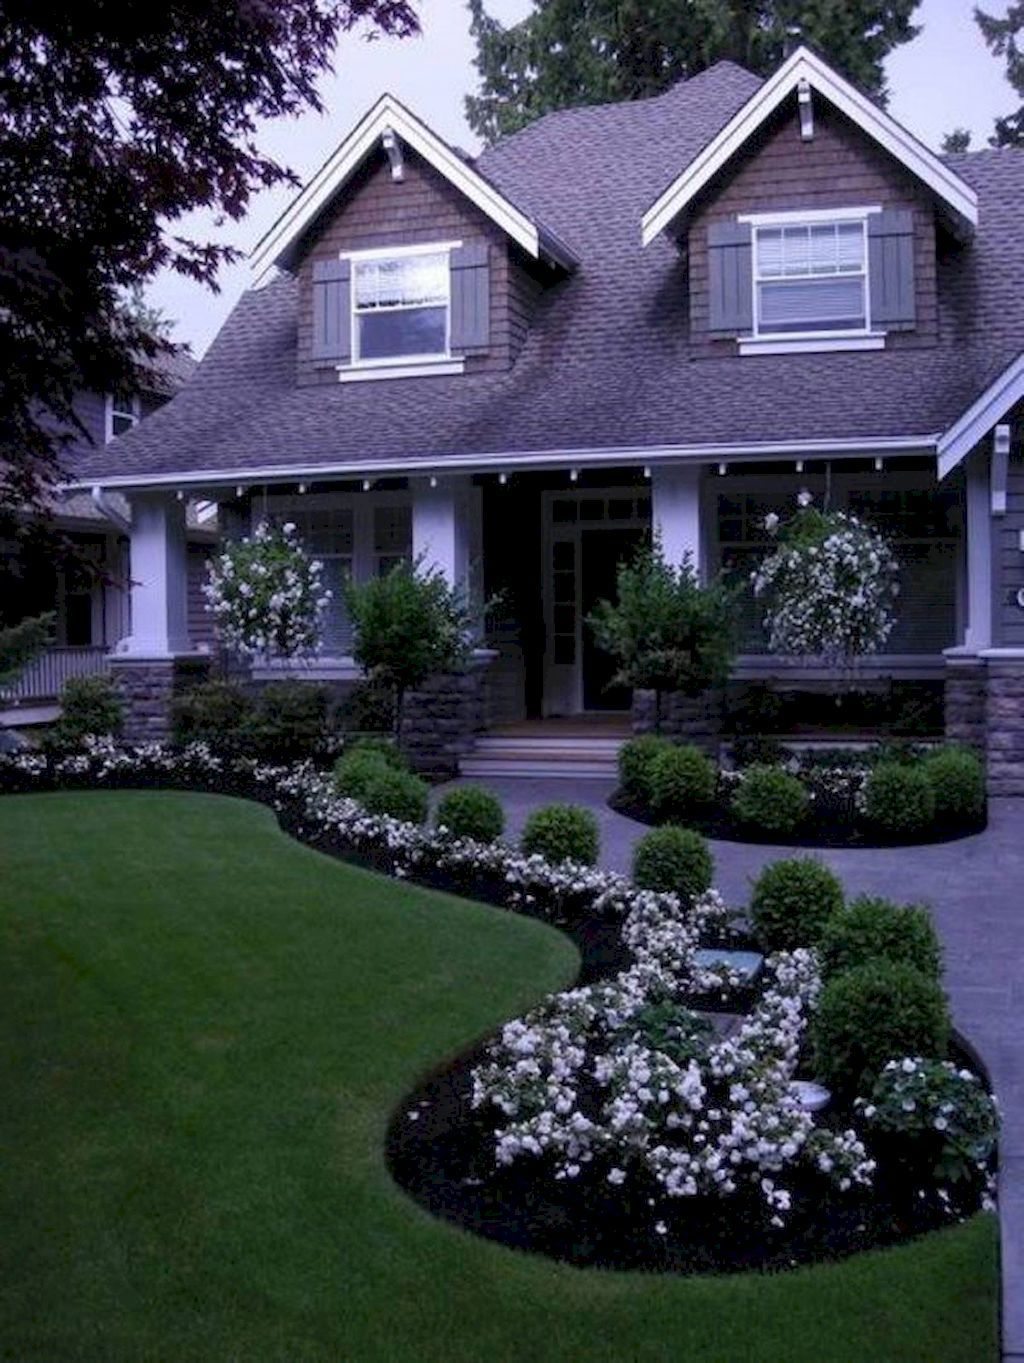 40 beautiful front yard landscaping ideas yard for Home front garden design